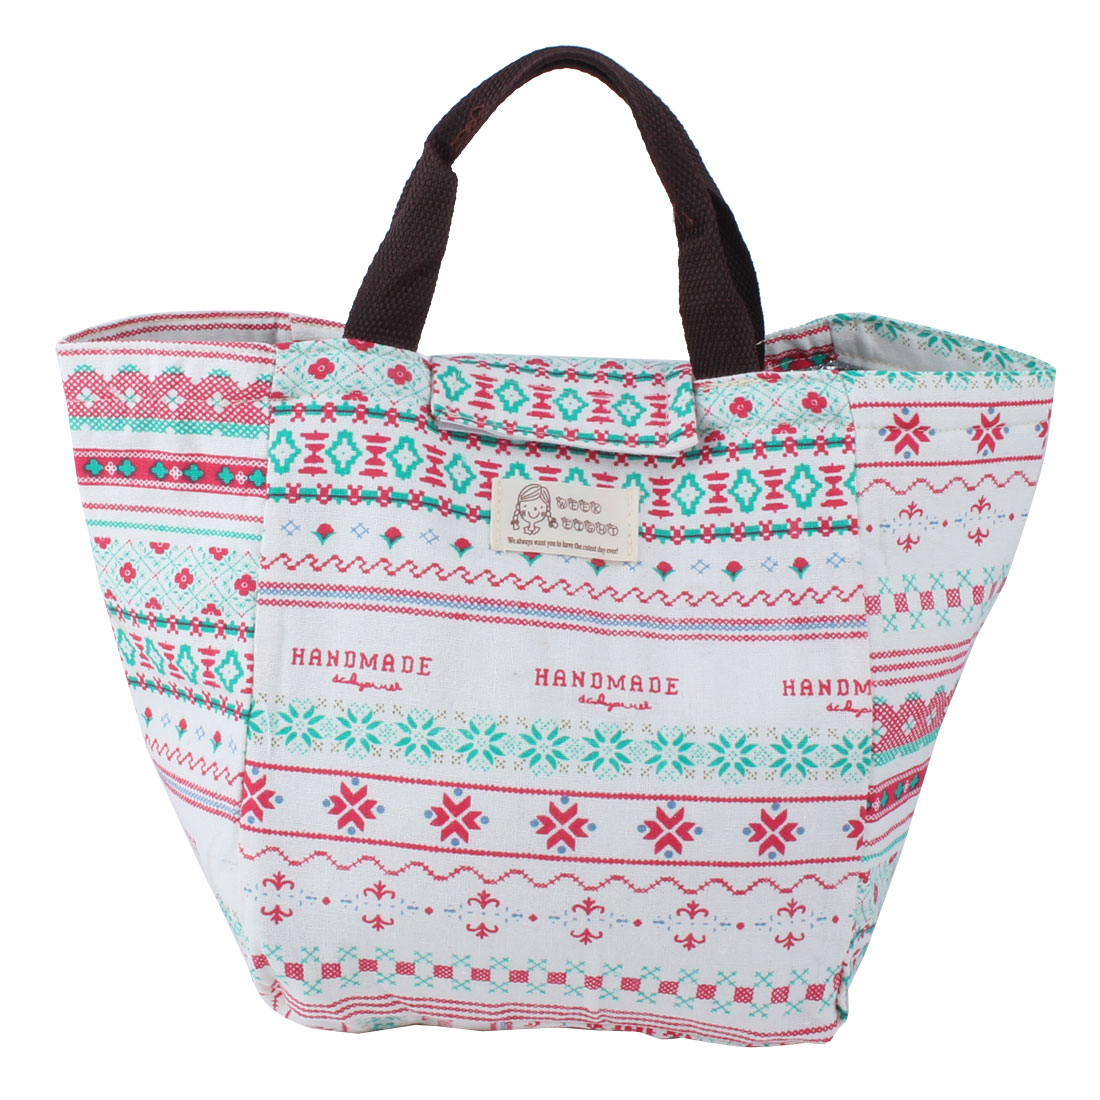 Office School Canvas Portable Insulated Thermal Cooler Lunch Carry Tote Picnic Case Storage Bag